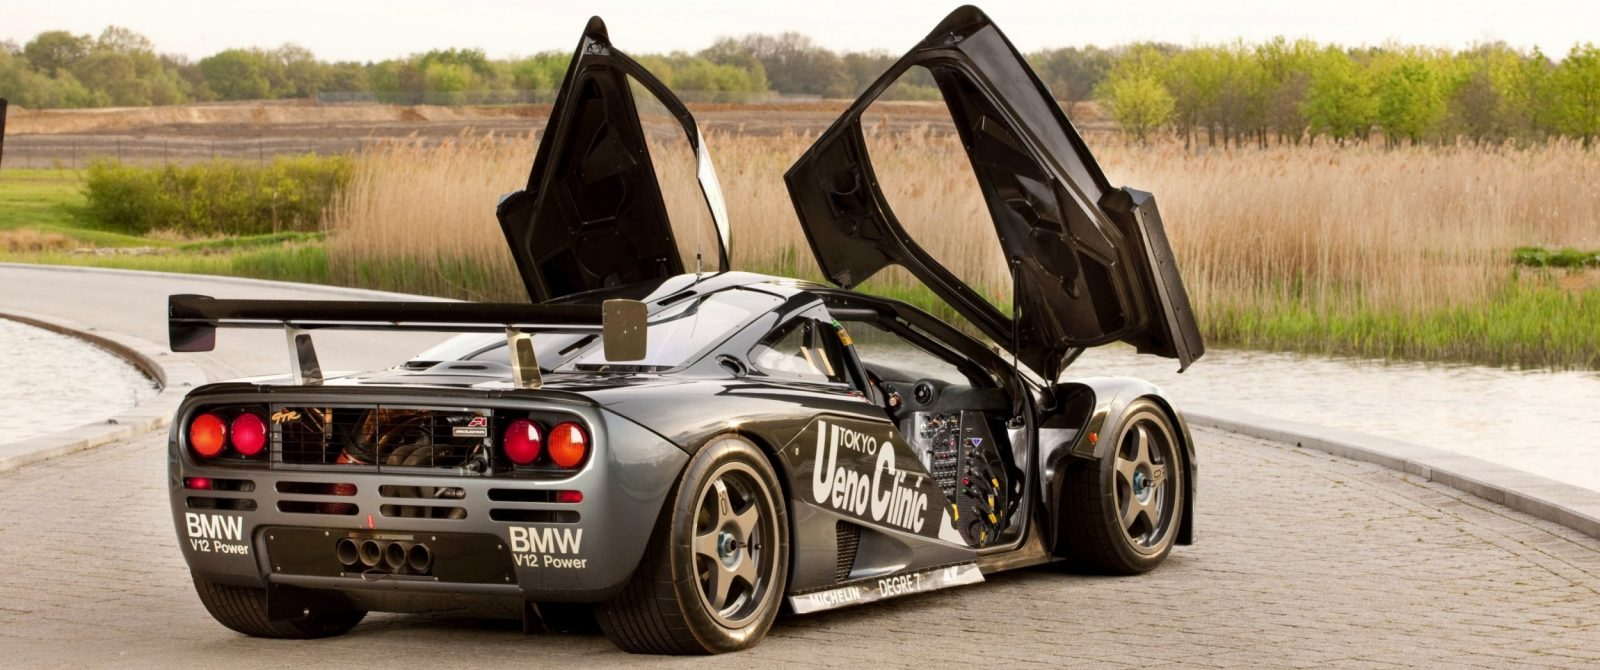 CarRevsDaily - Supercar Legends - McLaren F1 Wallpaper 17